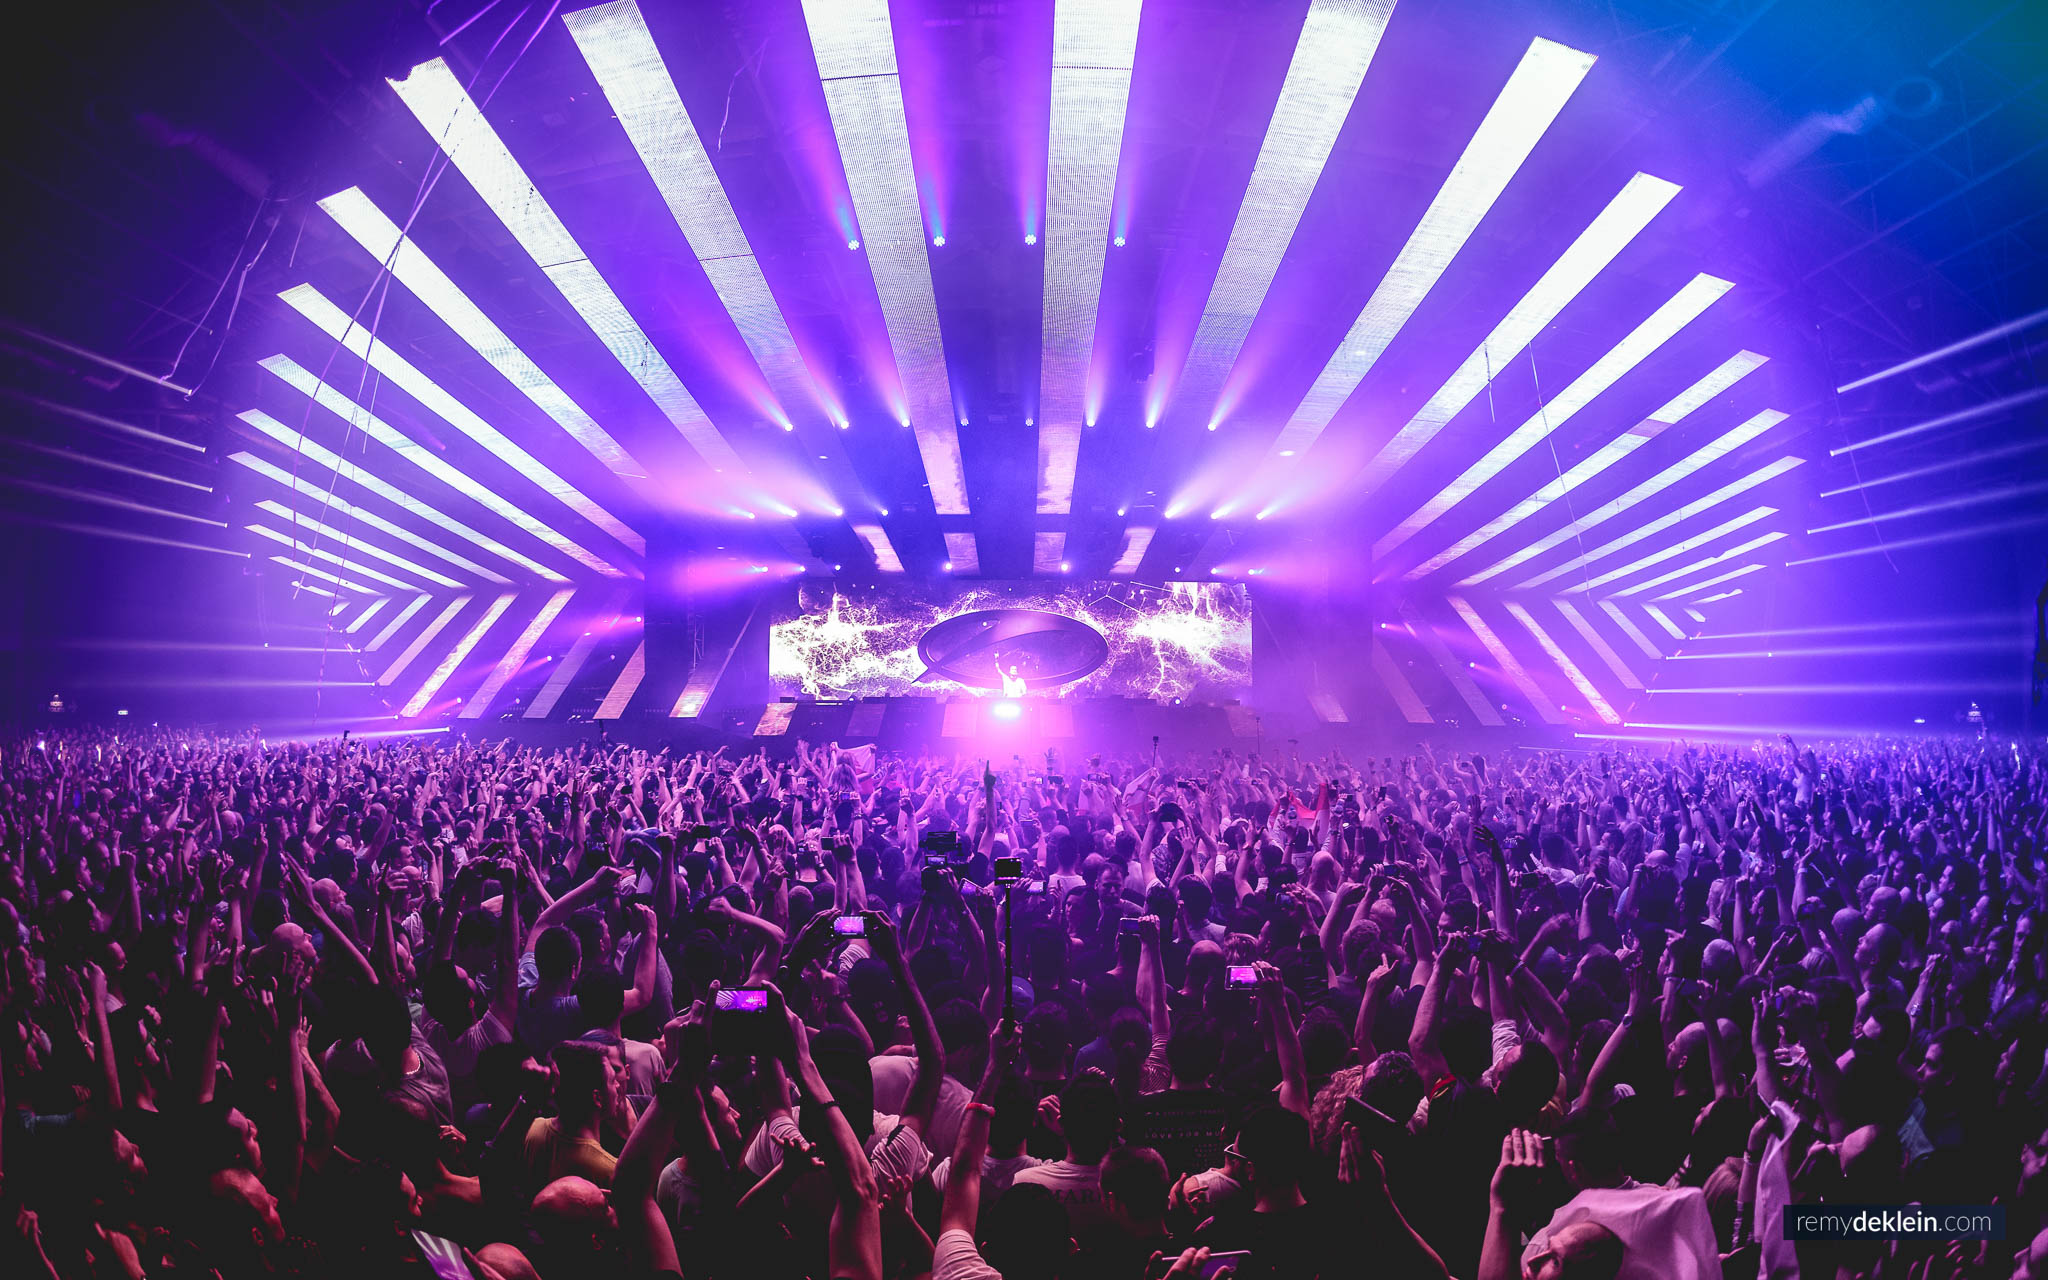 A State of Trance 900 Comes to Bay Area This Summer